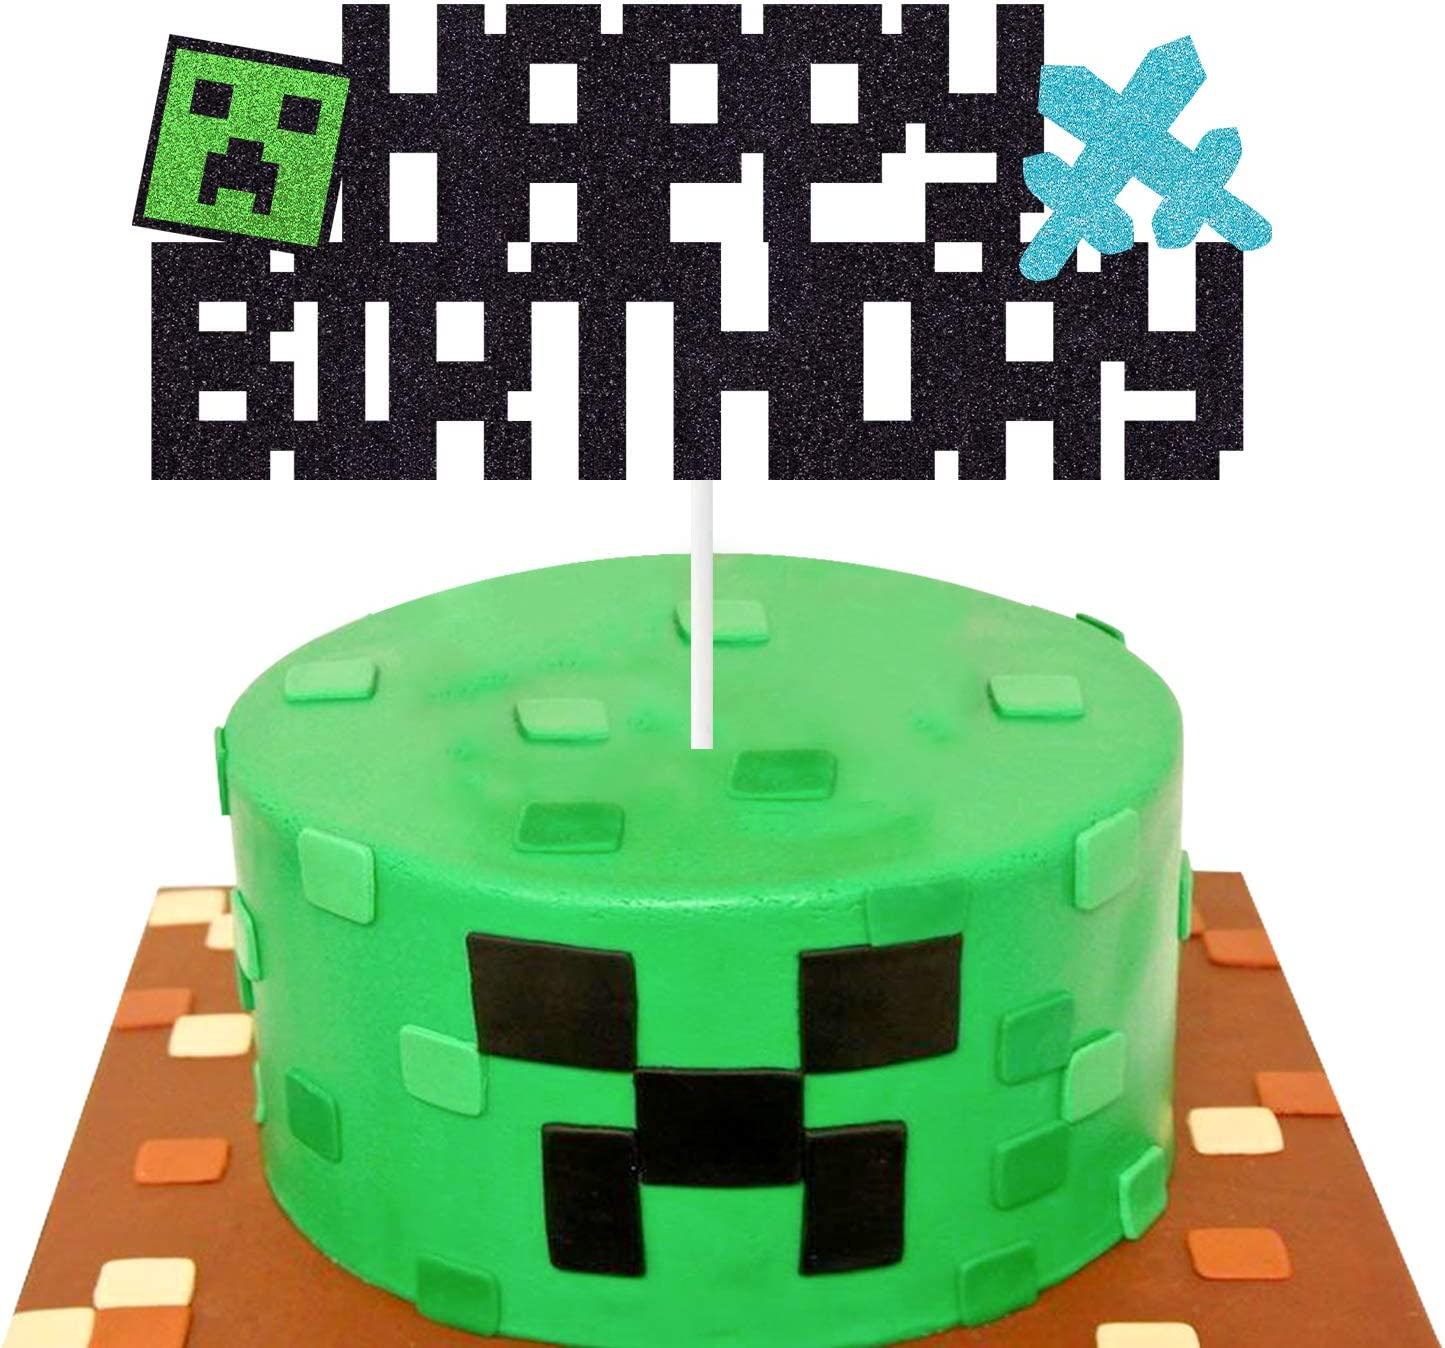 Pixel New popularity Cake Topper Video Game Themed Limited time trial price Happy Birthday Decorati